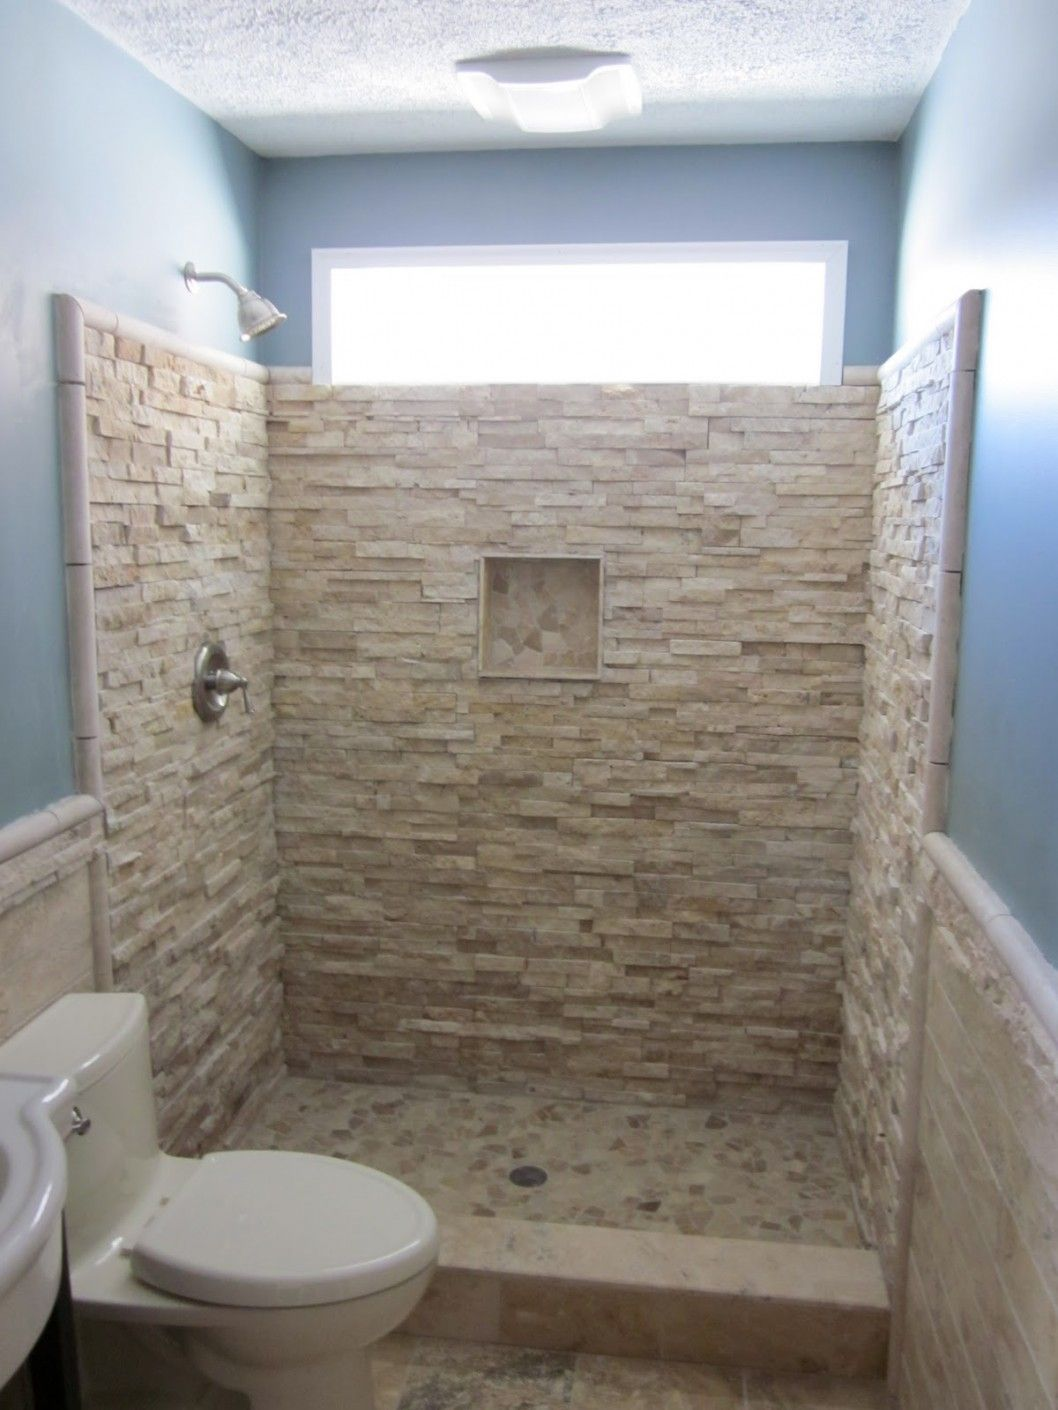 Expert Advice On What To Look For When Buying New Furniture Modern Home Furniture Products Pictures Small Bathroom Tiles Small Bathroom Remodel Tile Bathroom